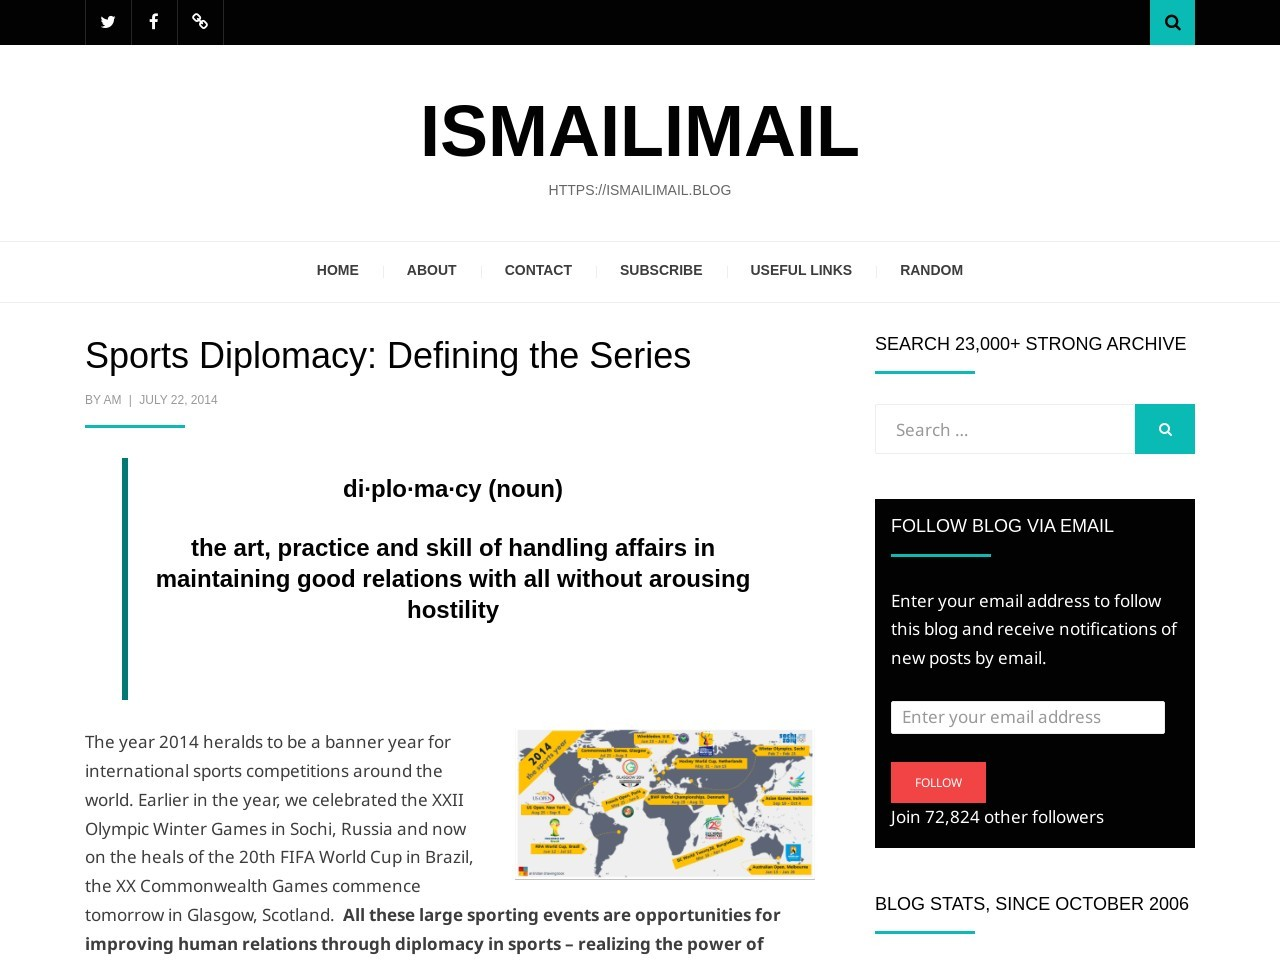 Sports Diplomacy: Defining the Series | Ismailimail